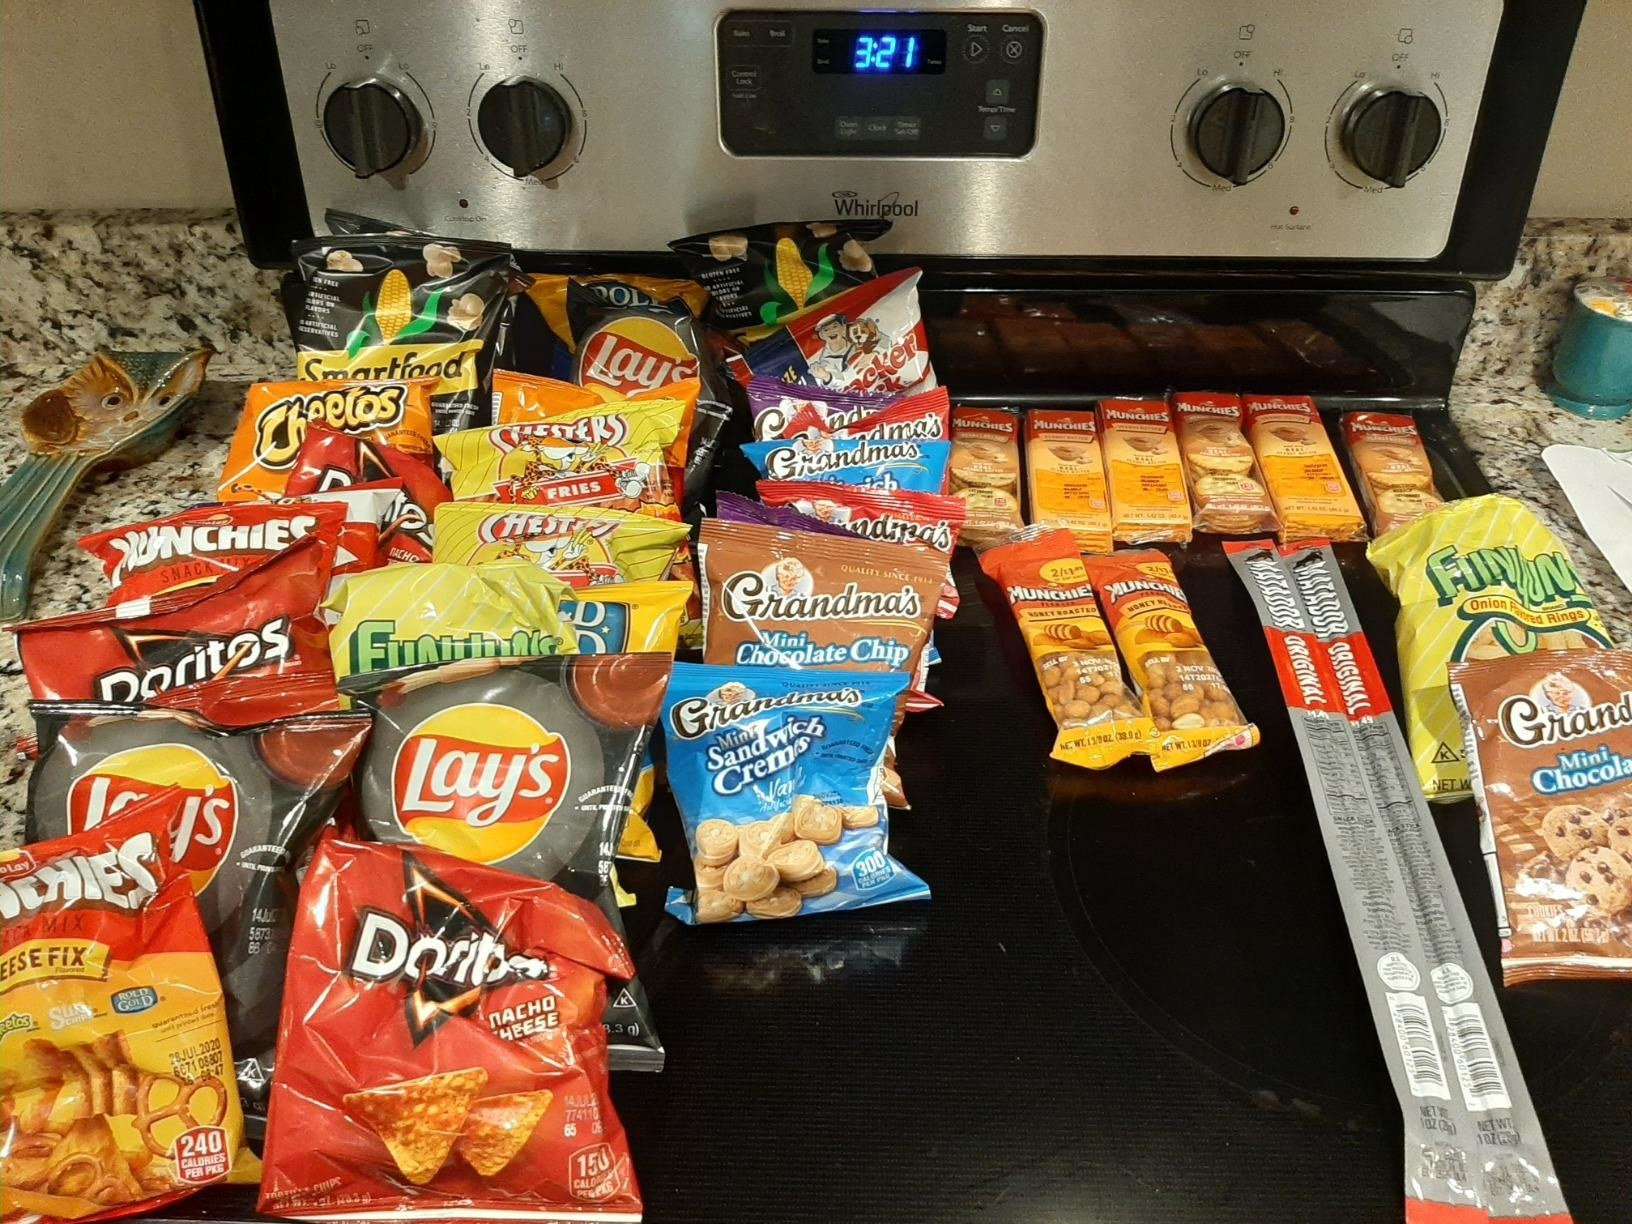 Reviewer snack assortment laid out on stove